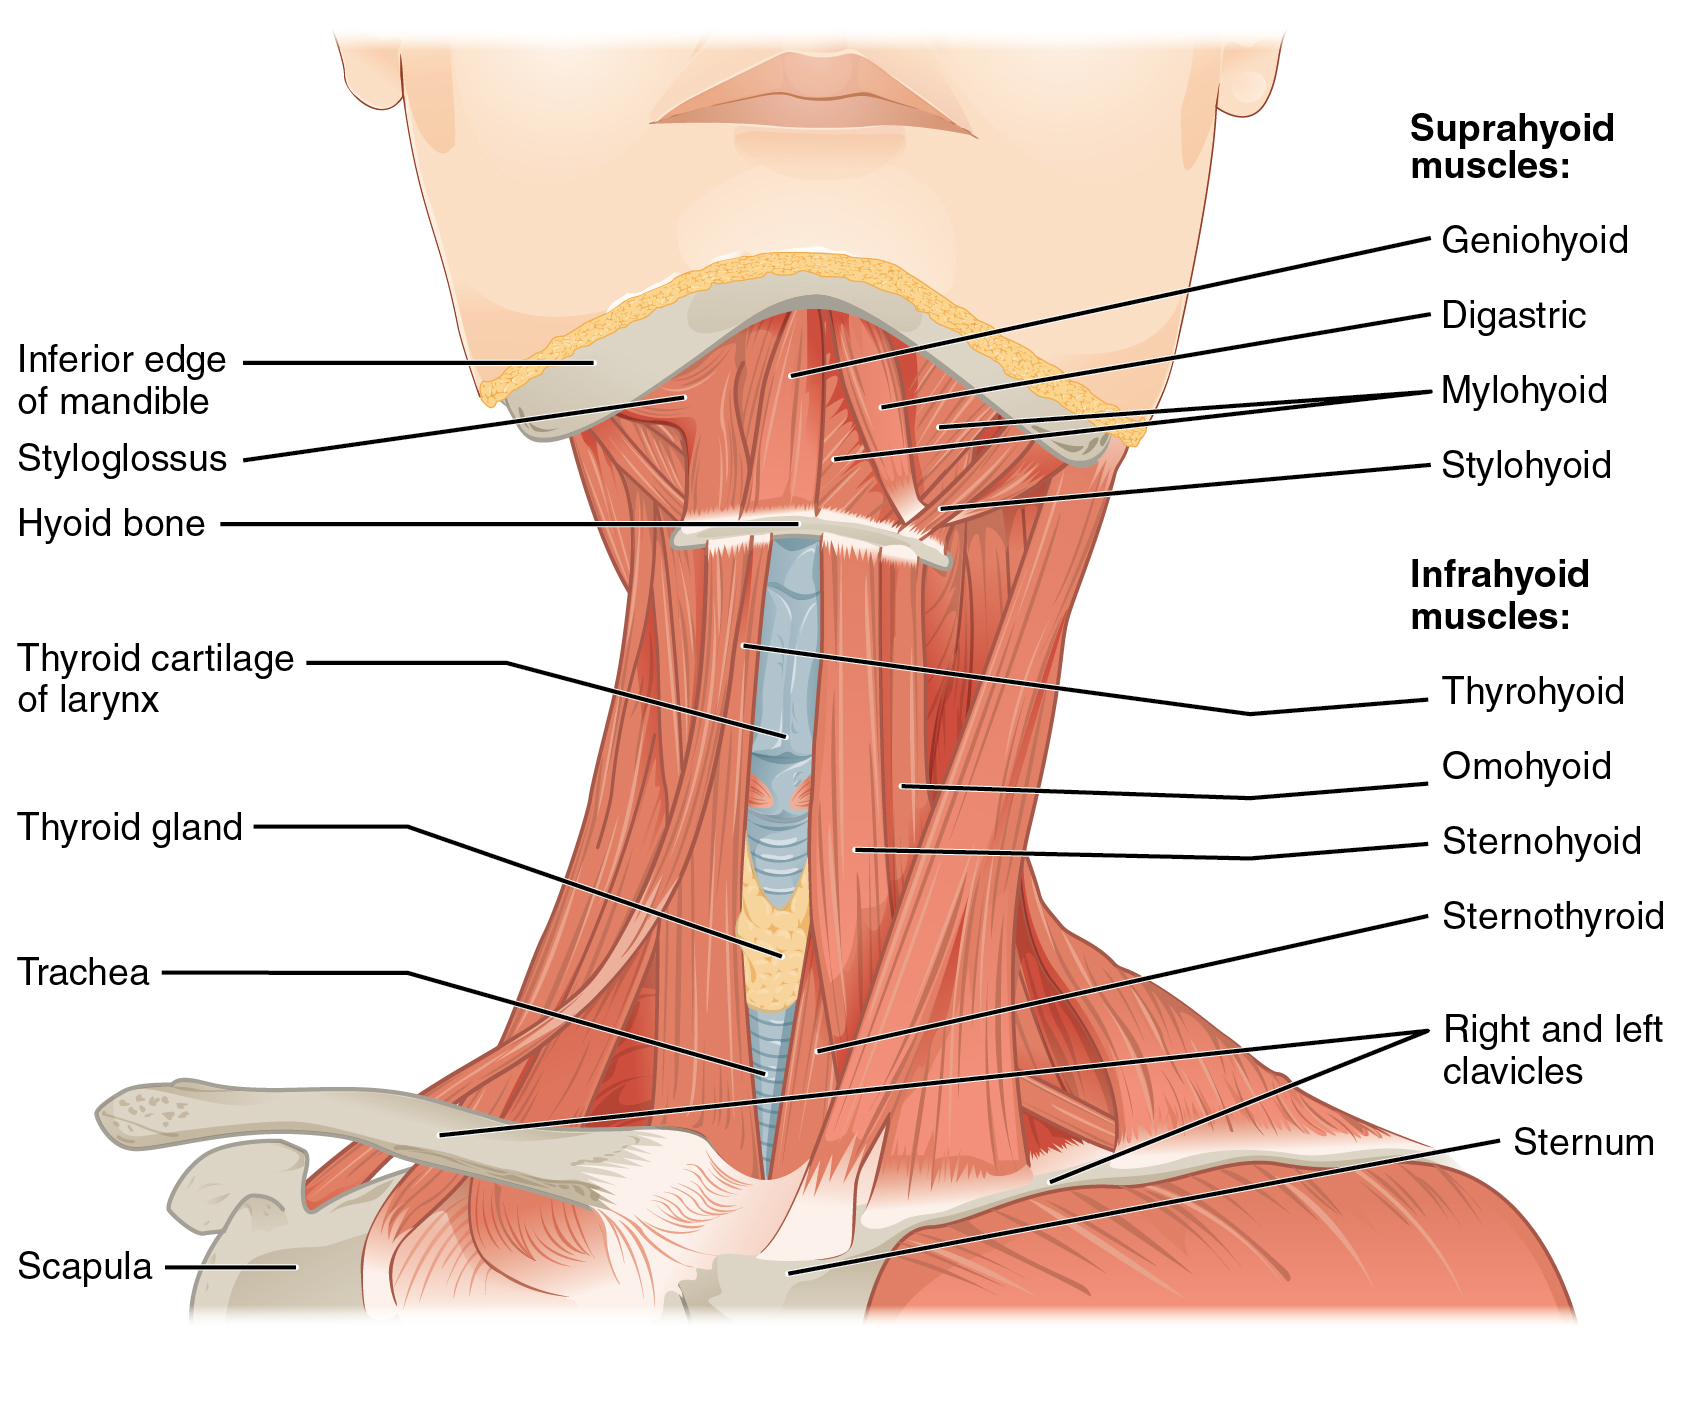 This figure shows the front view of a person's neck with the major muscle groups labeled.